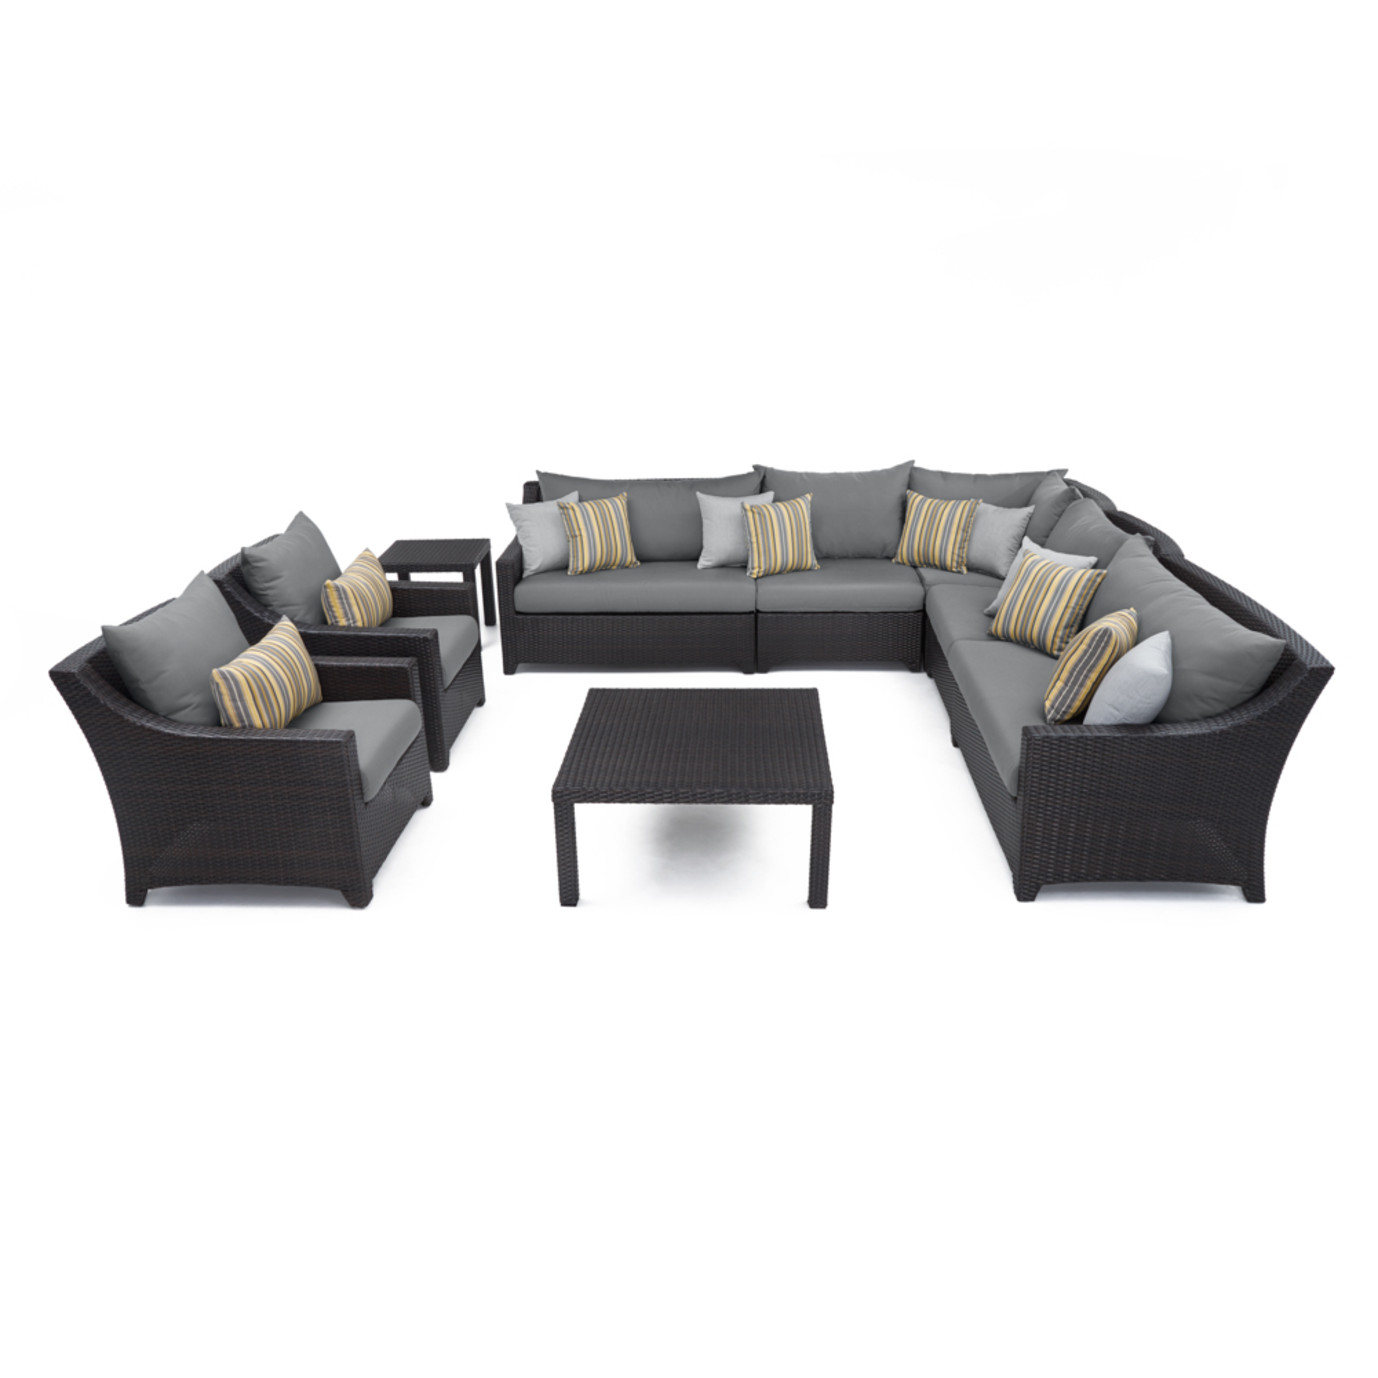 Deco™ 9pc Sectional and Club Set - Charcoal Gray